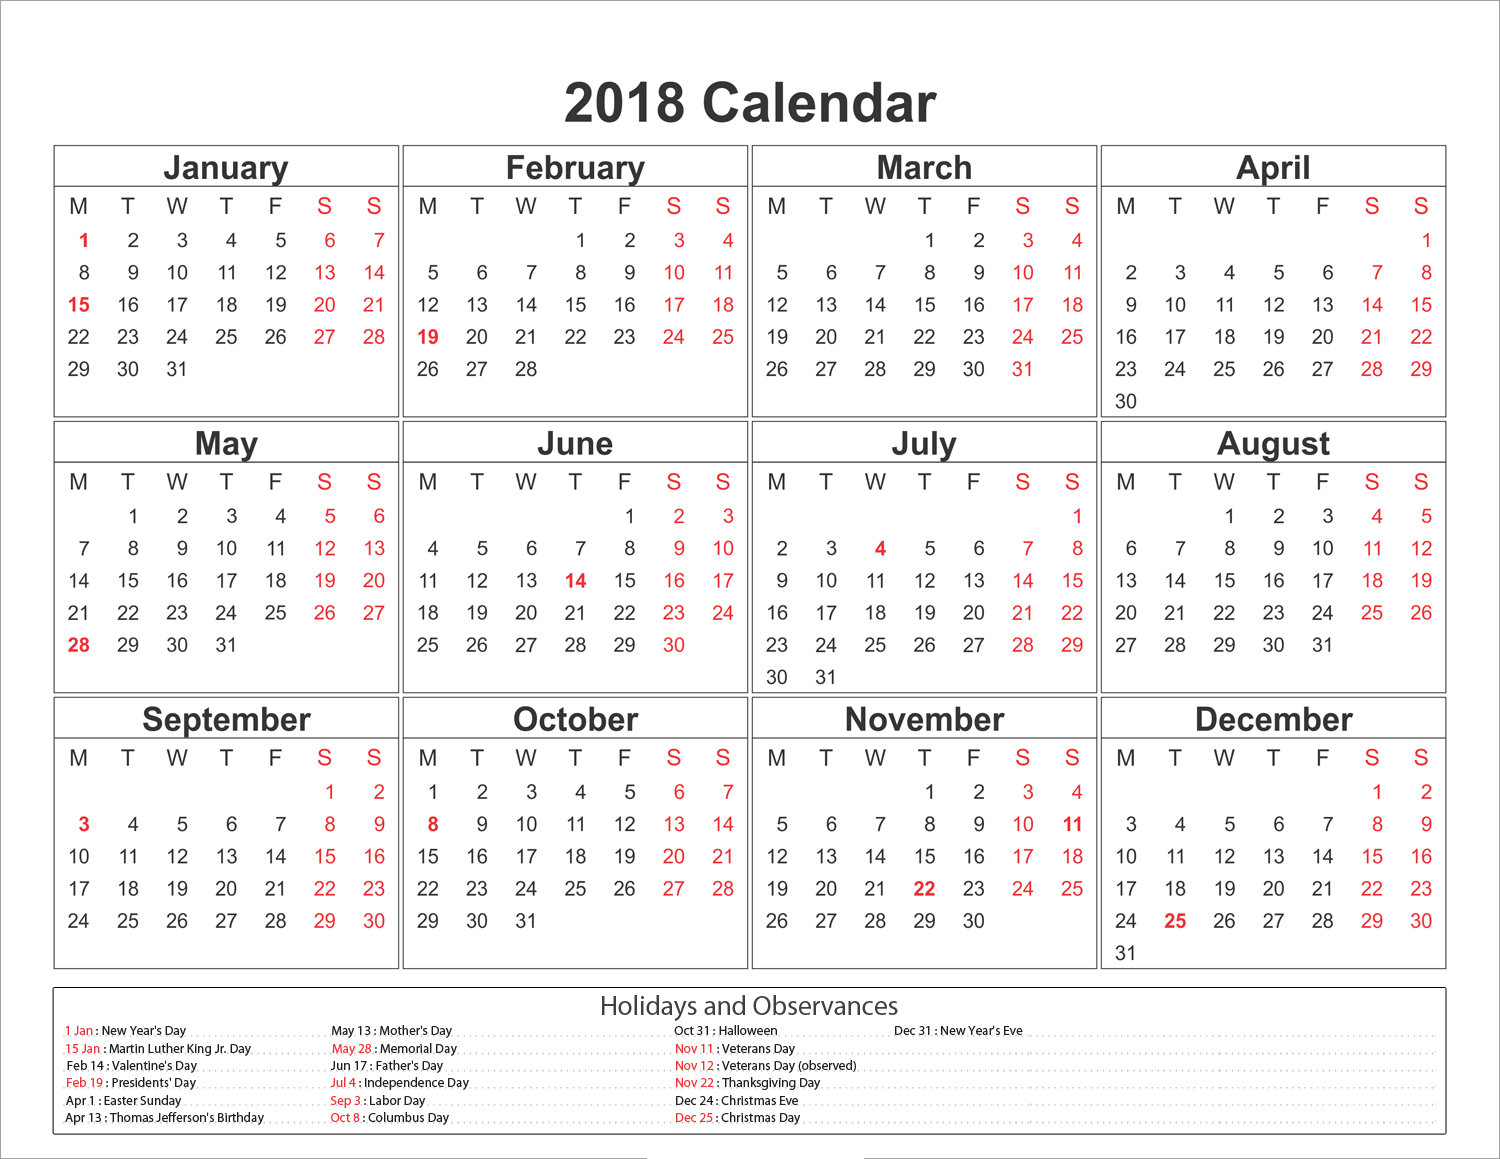 Yearly 2018 Calendar With Holidays 1 Png 1500 1159 Free Printable Calendar Templates Calendar 2019 Printable Calendar 2019 Template